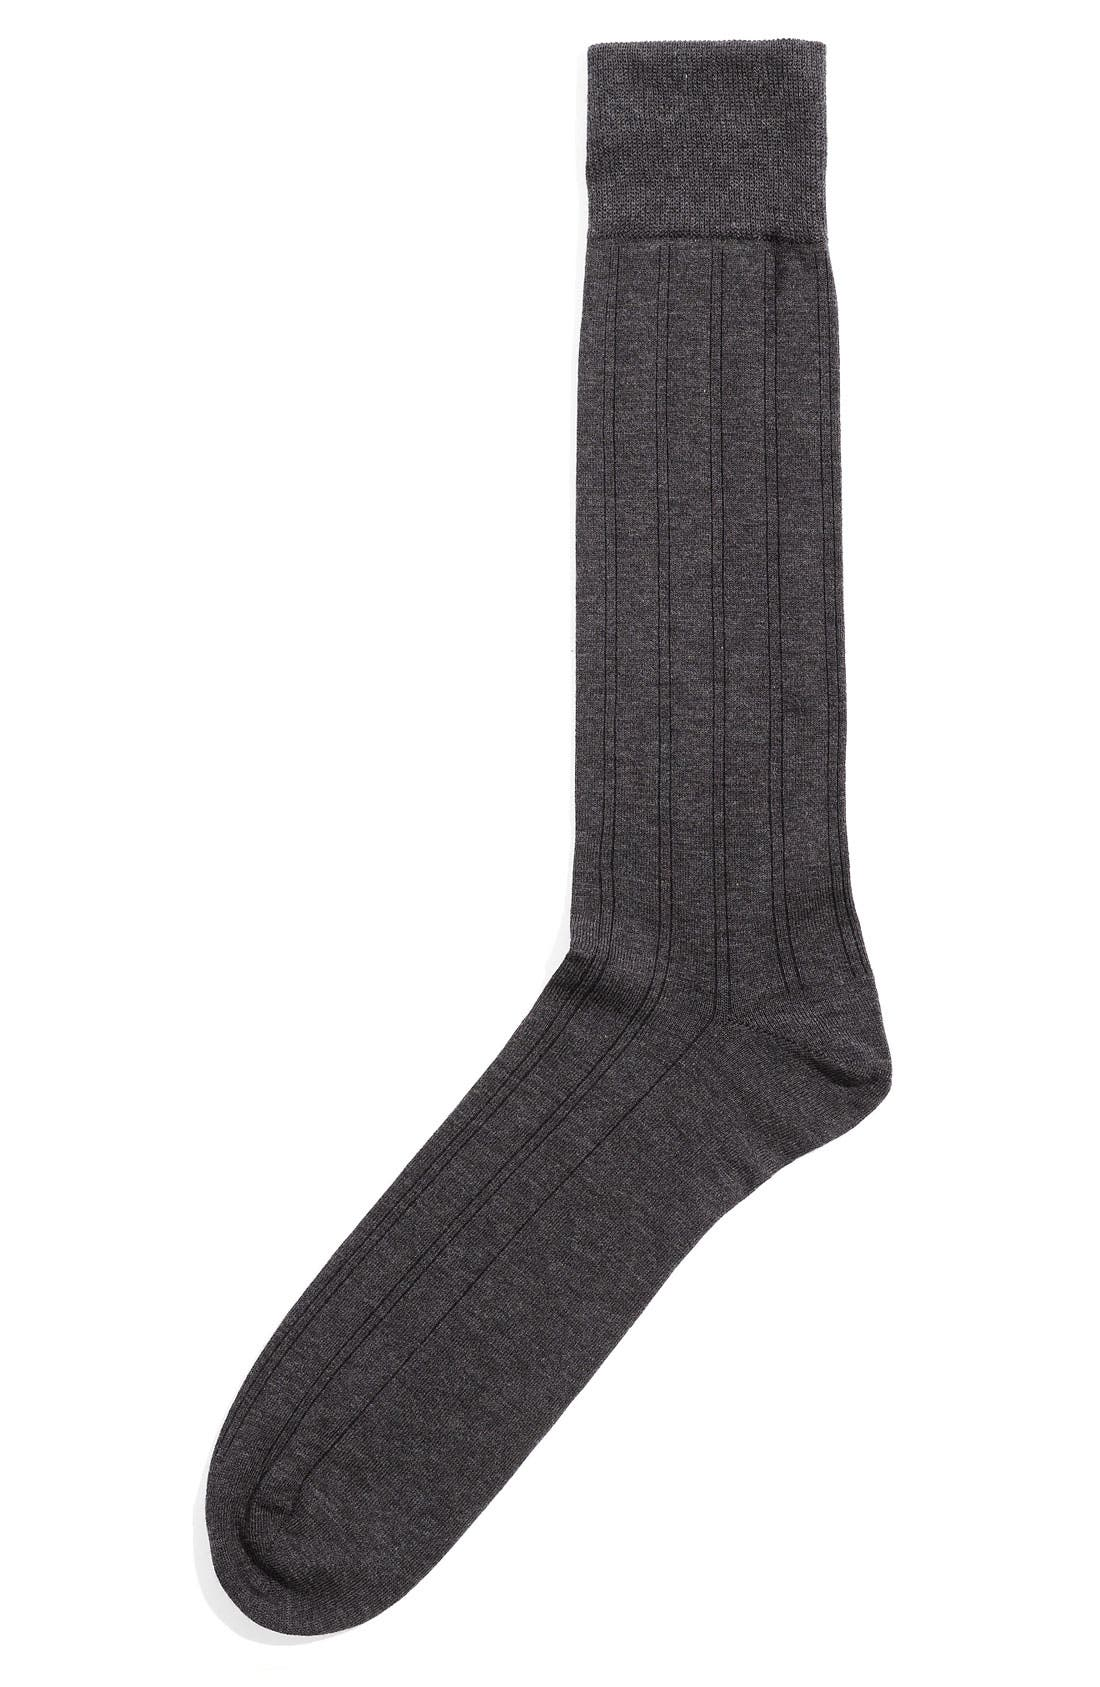 Alternate Image 1 Selected - Calibrate Pattern Dress Socks